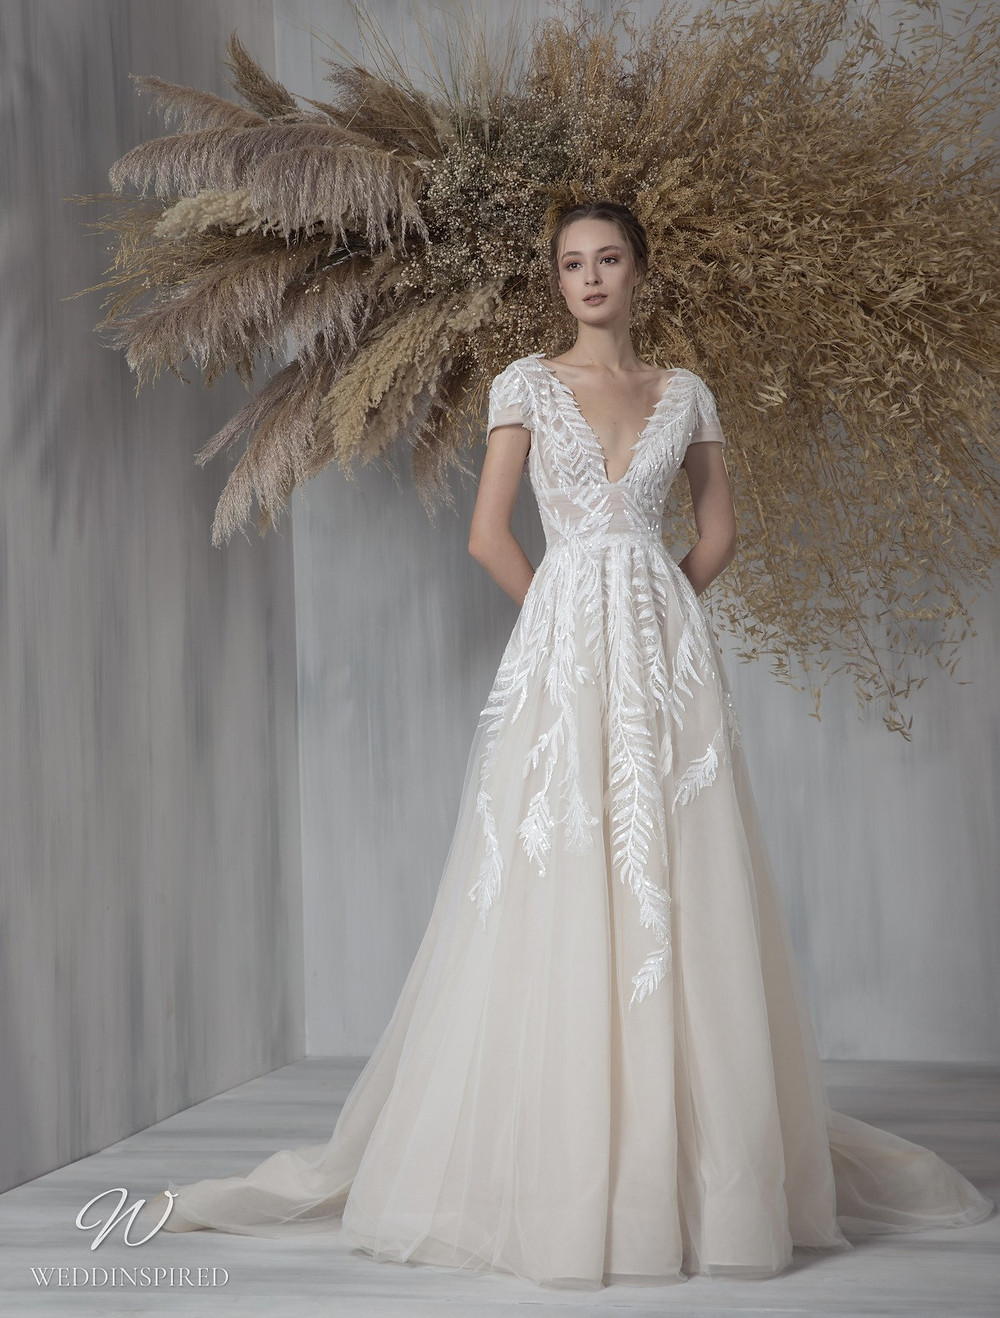 A Tony Ward 2021 tulle A-line wedding dress with cap sleeves, a v neckline and embroidery